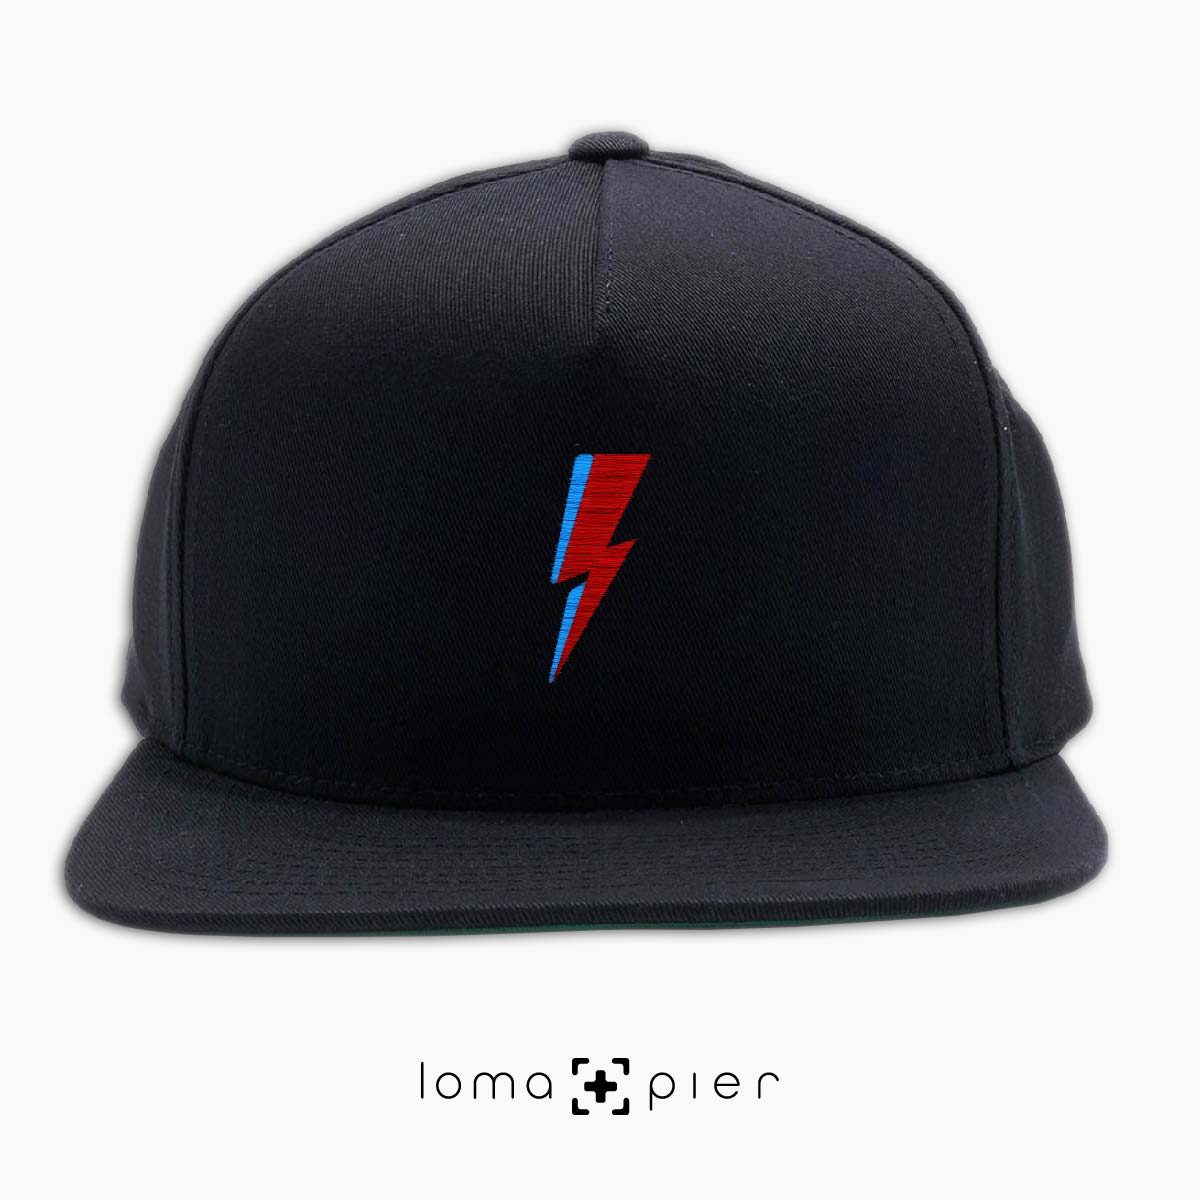 LIGHTNING BOLT icon embroidered on a black classic snapback hat with multicolor thread by loma+pier hat store